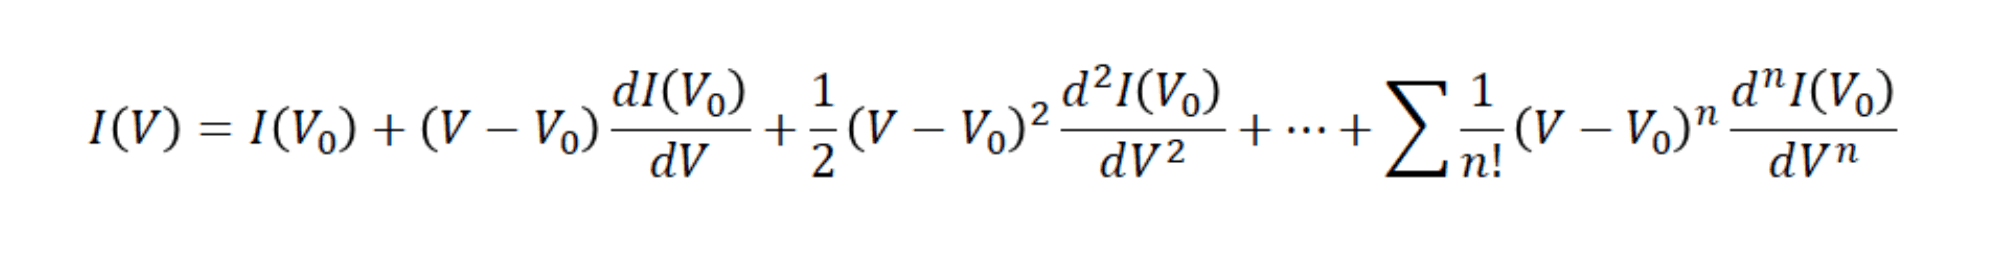 Nonlinear current vs. voltage relationship expanded as a Taylor series